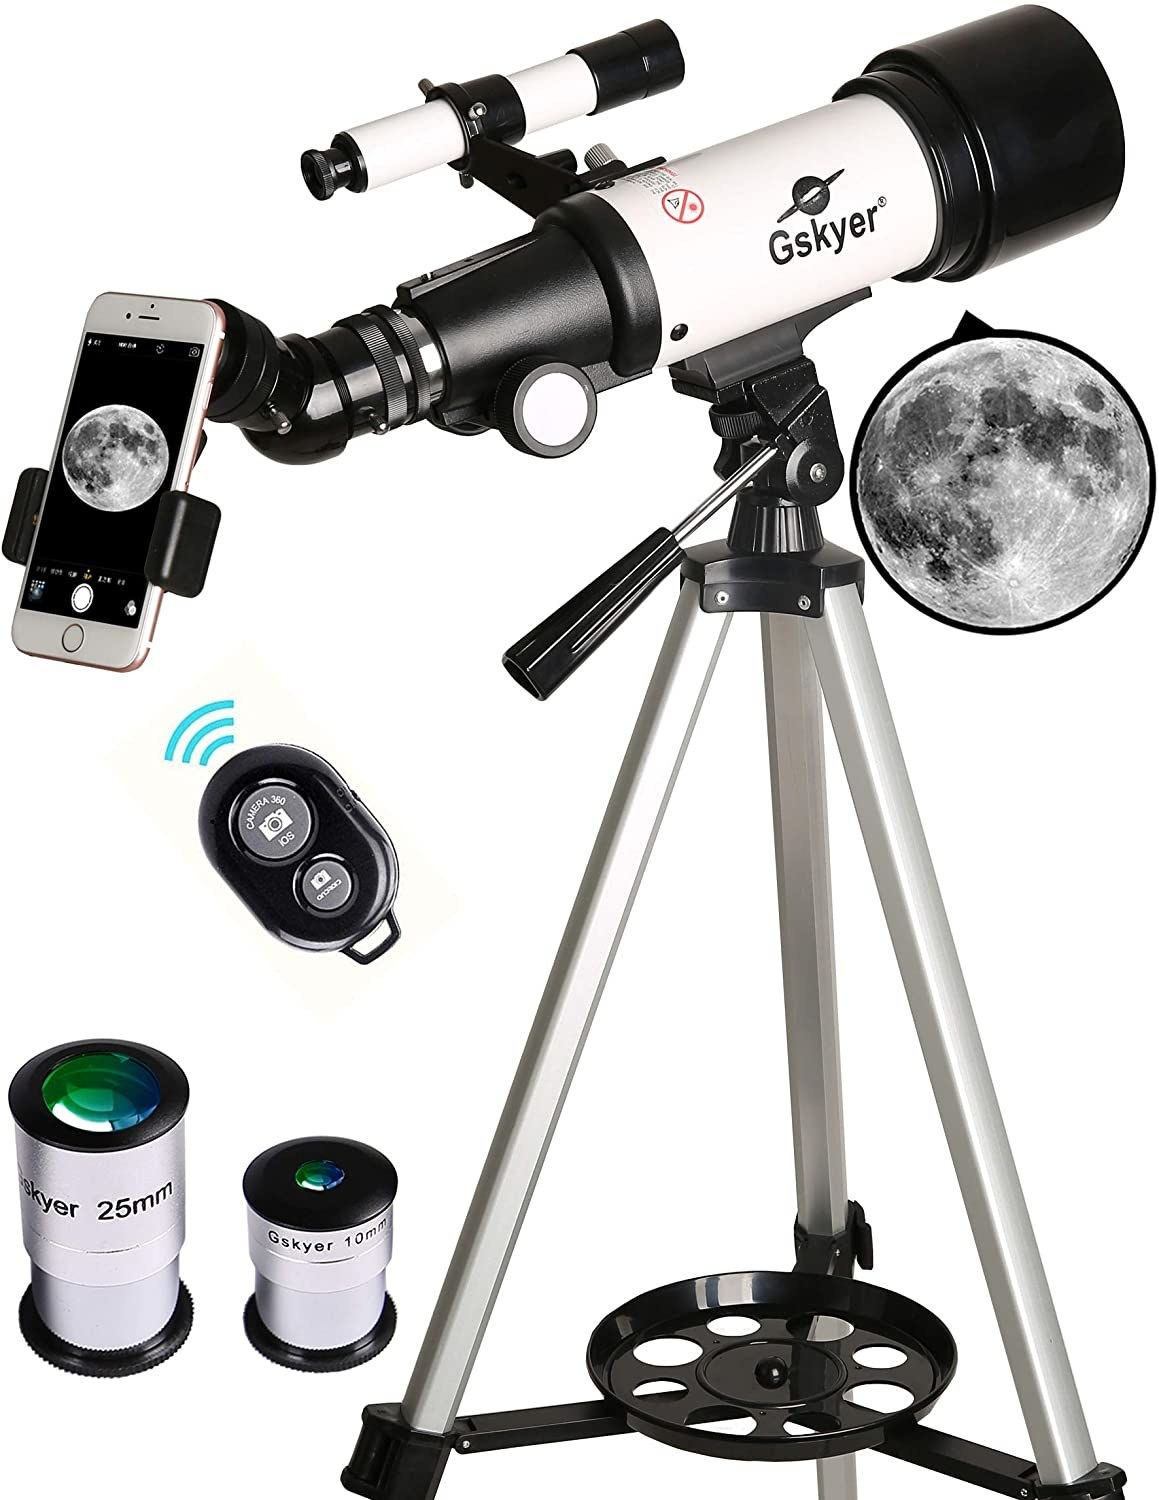 A product shot of the telescope showing the different sizes of lenses and a cell phone connected to the image through the telescope